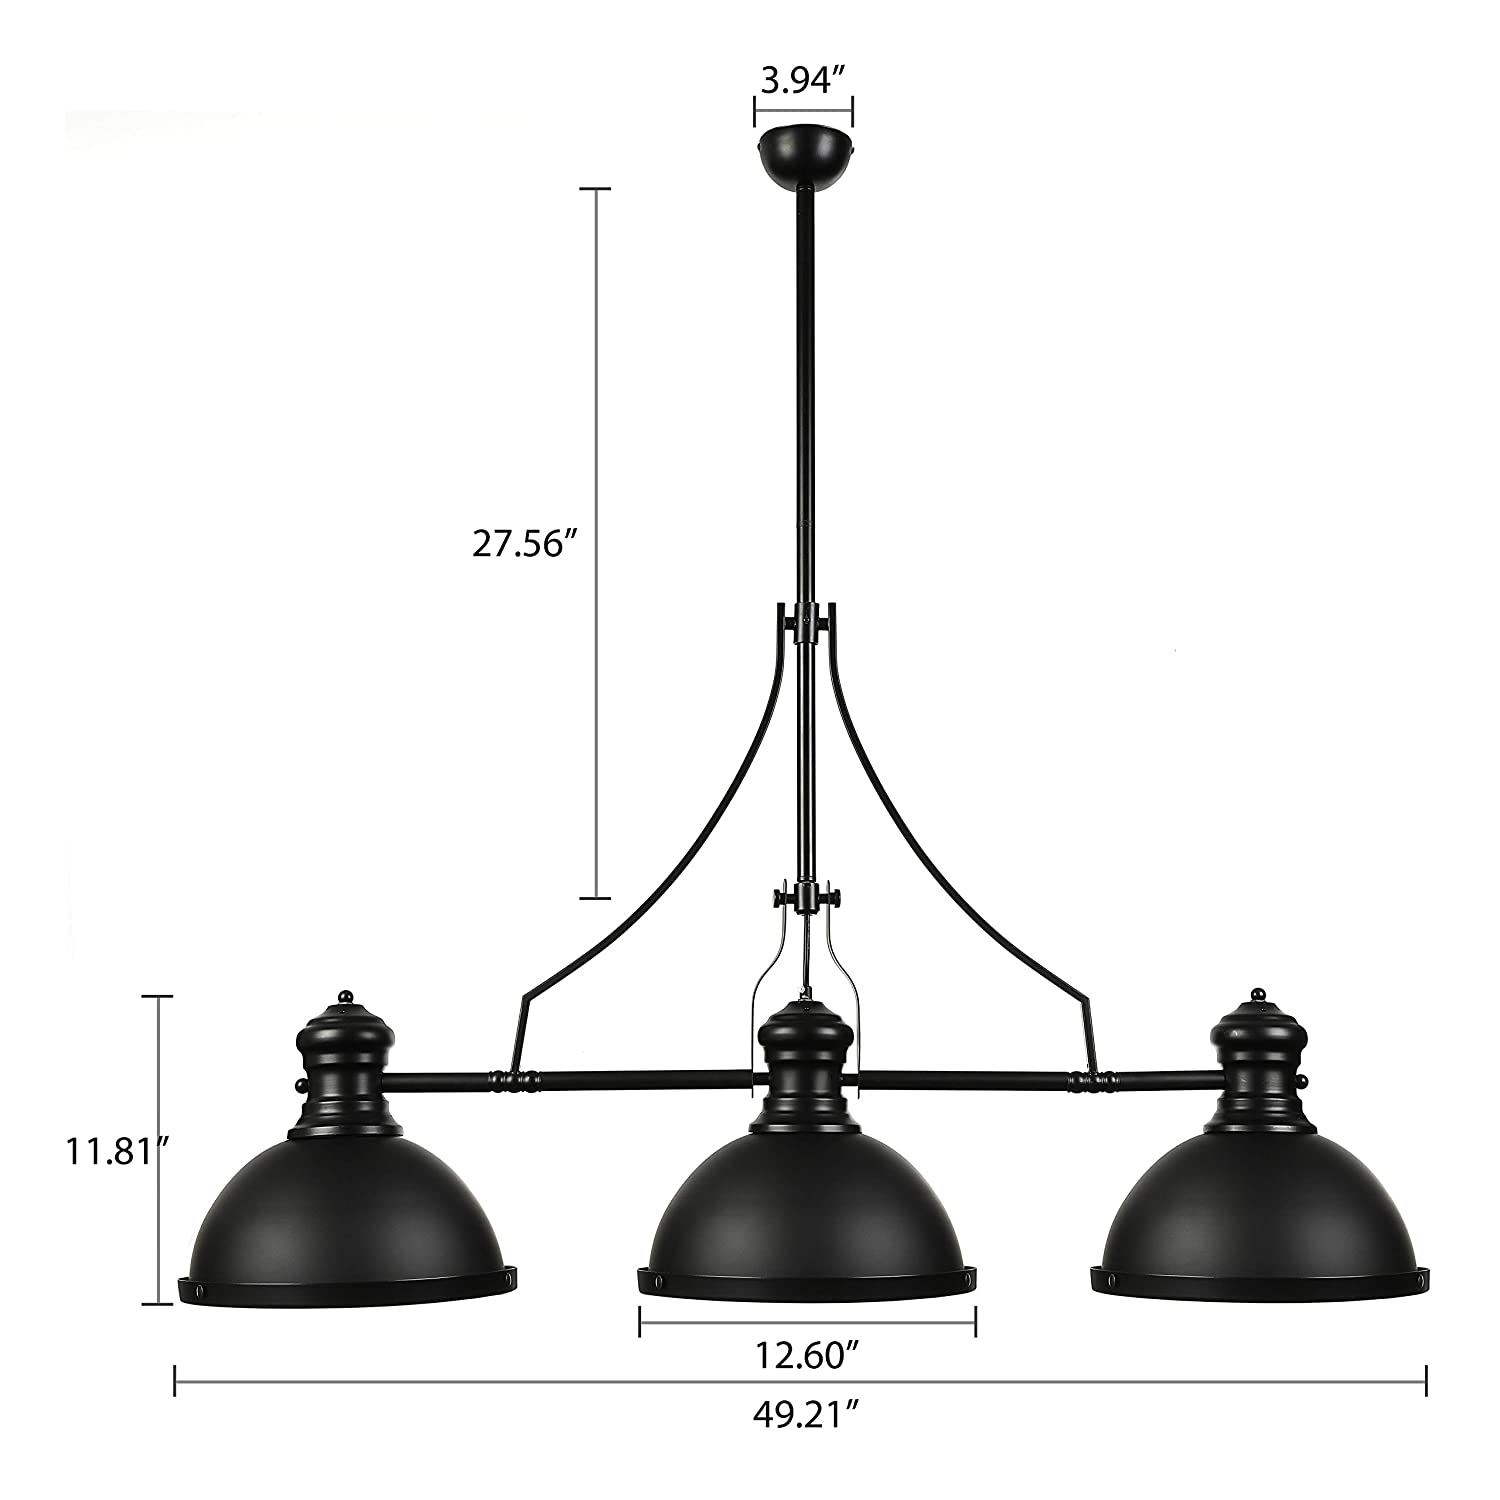 Baycheer Industrial Retro Vintage Style Three Light Pool Table Light